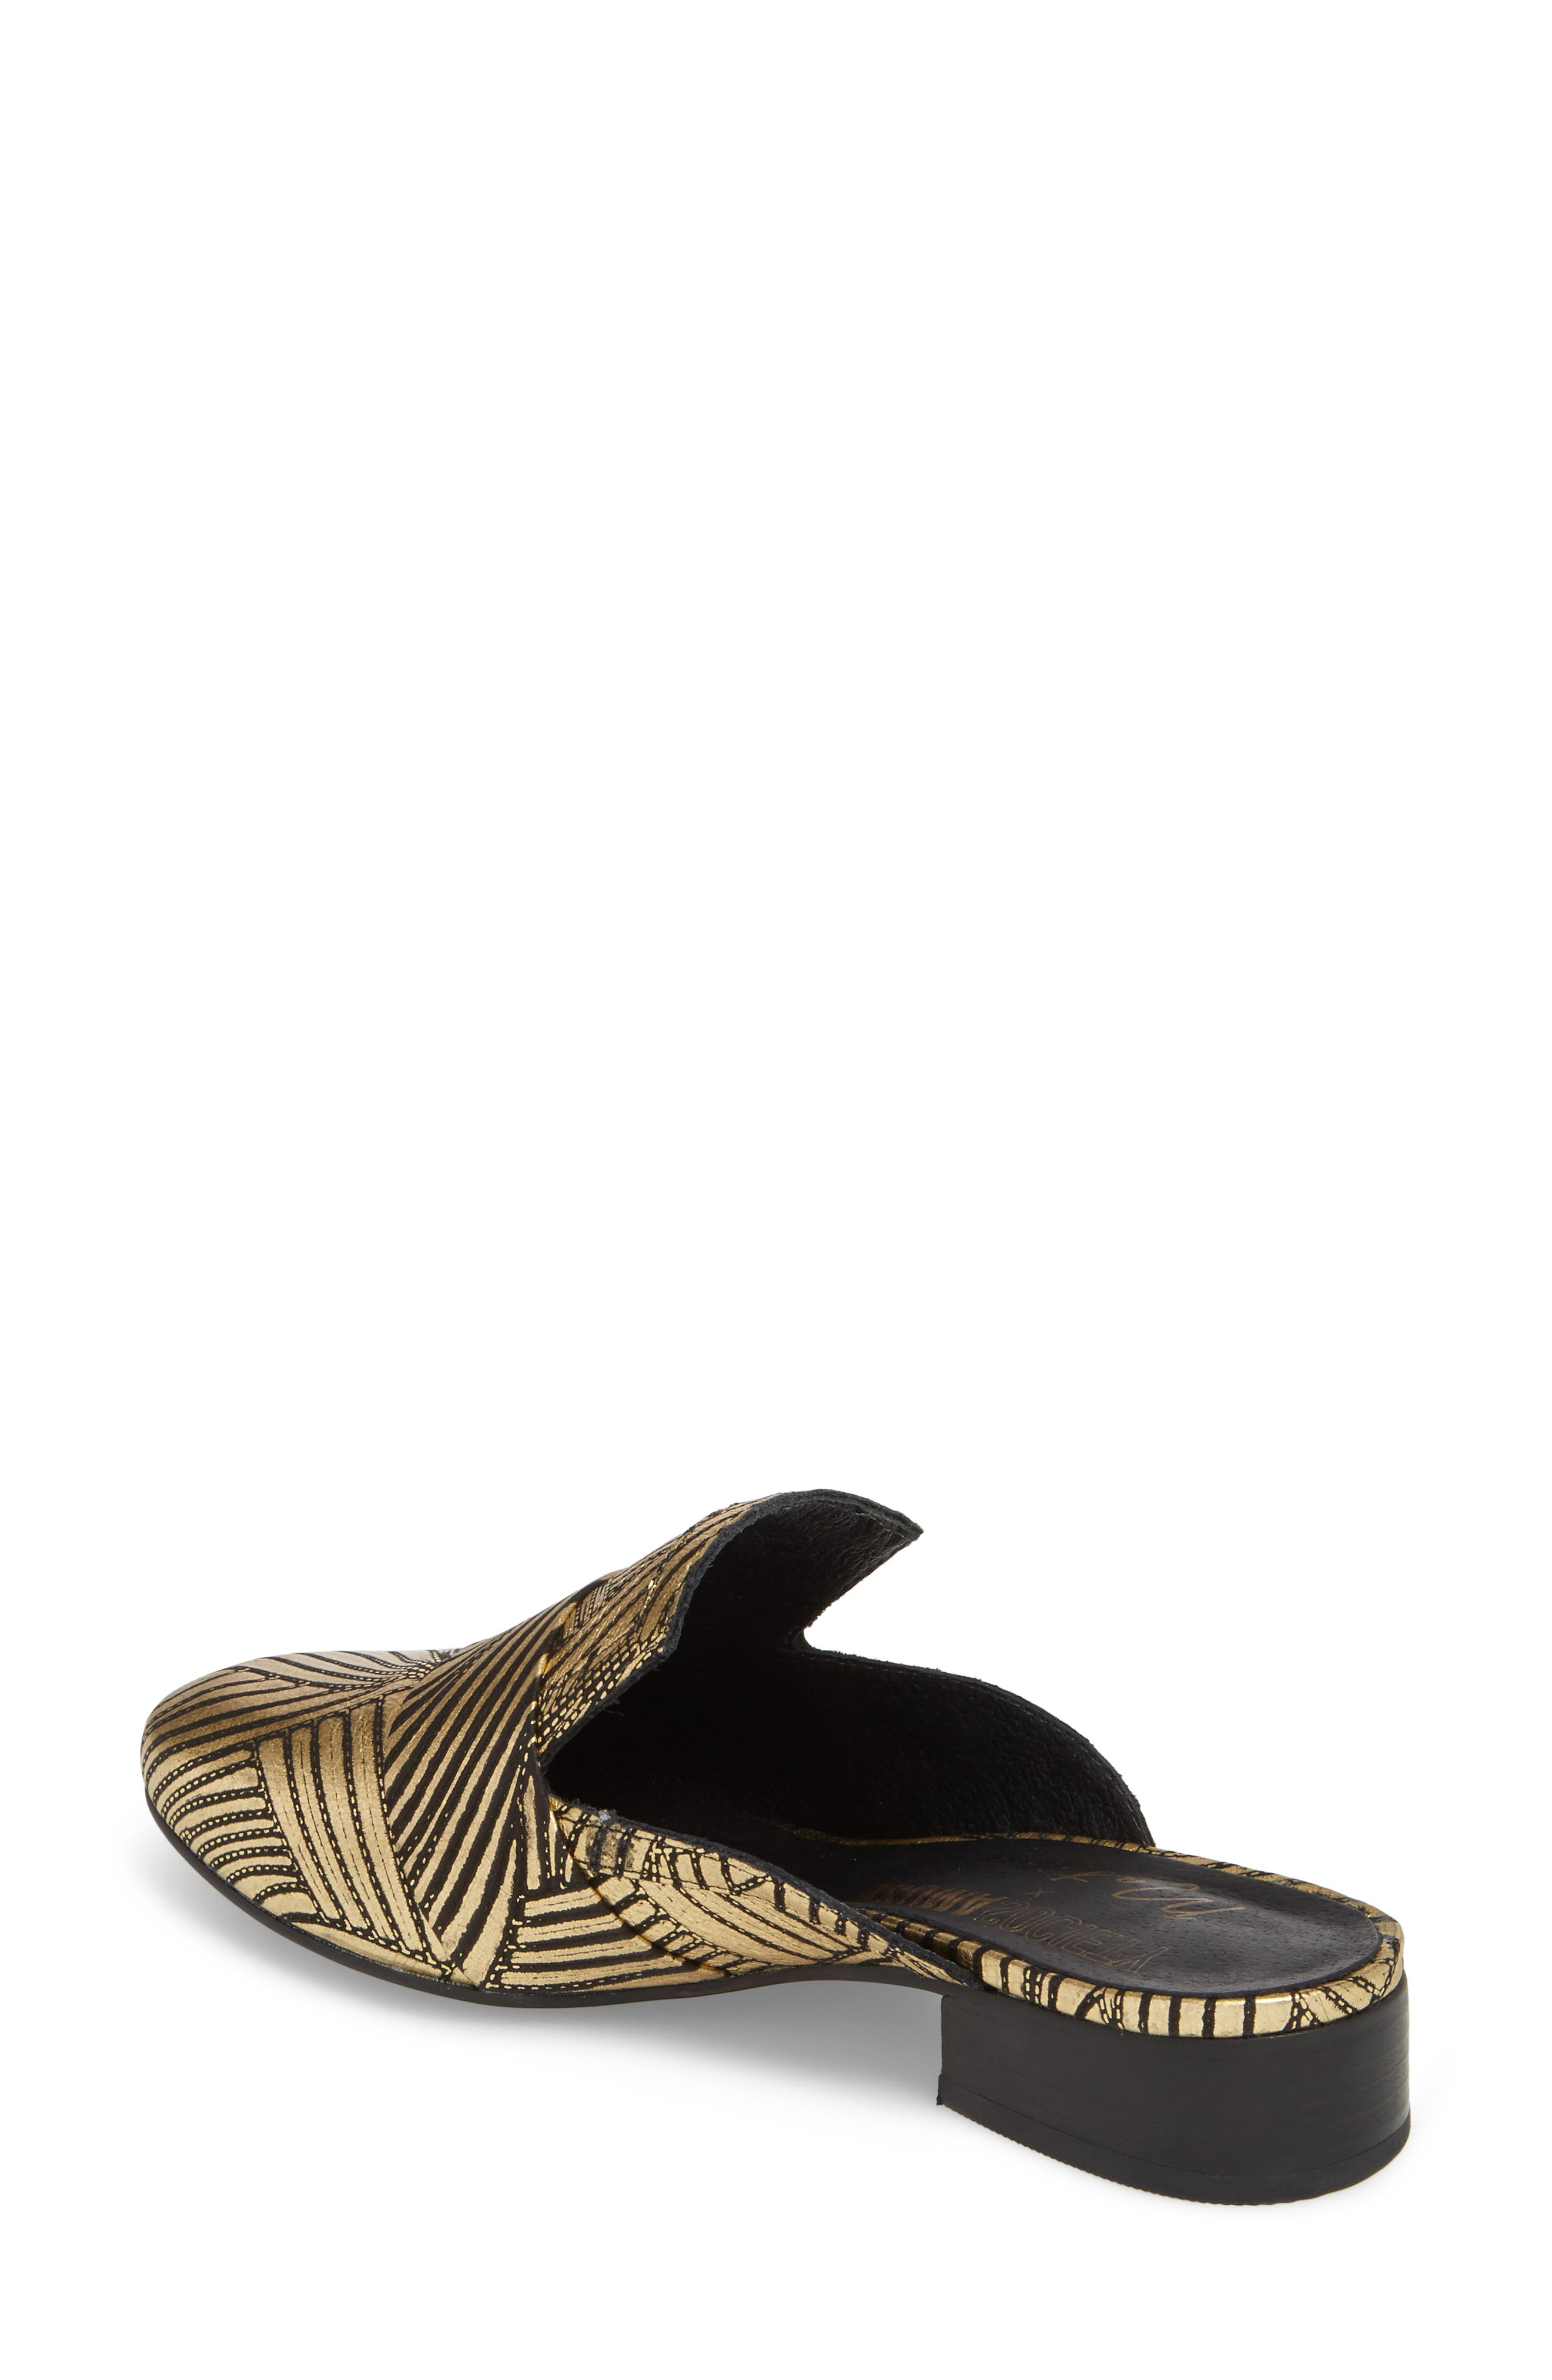 Amuse Society x Matisse Le Bella Loafer Mule,                             Alternate thumbnail 2, color,                             Gold Floral Leather